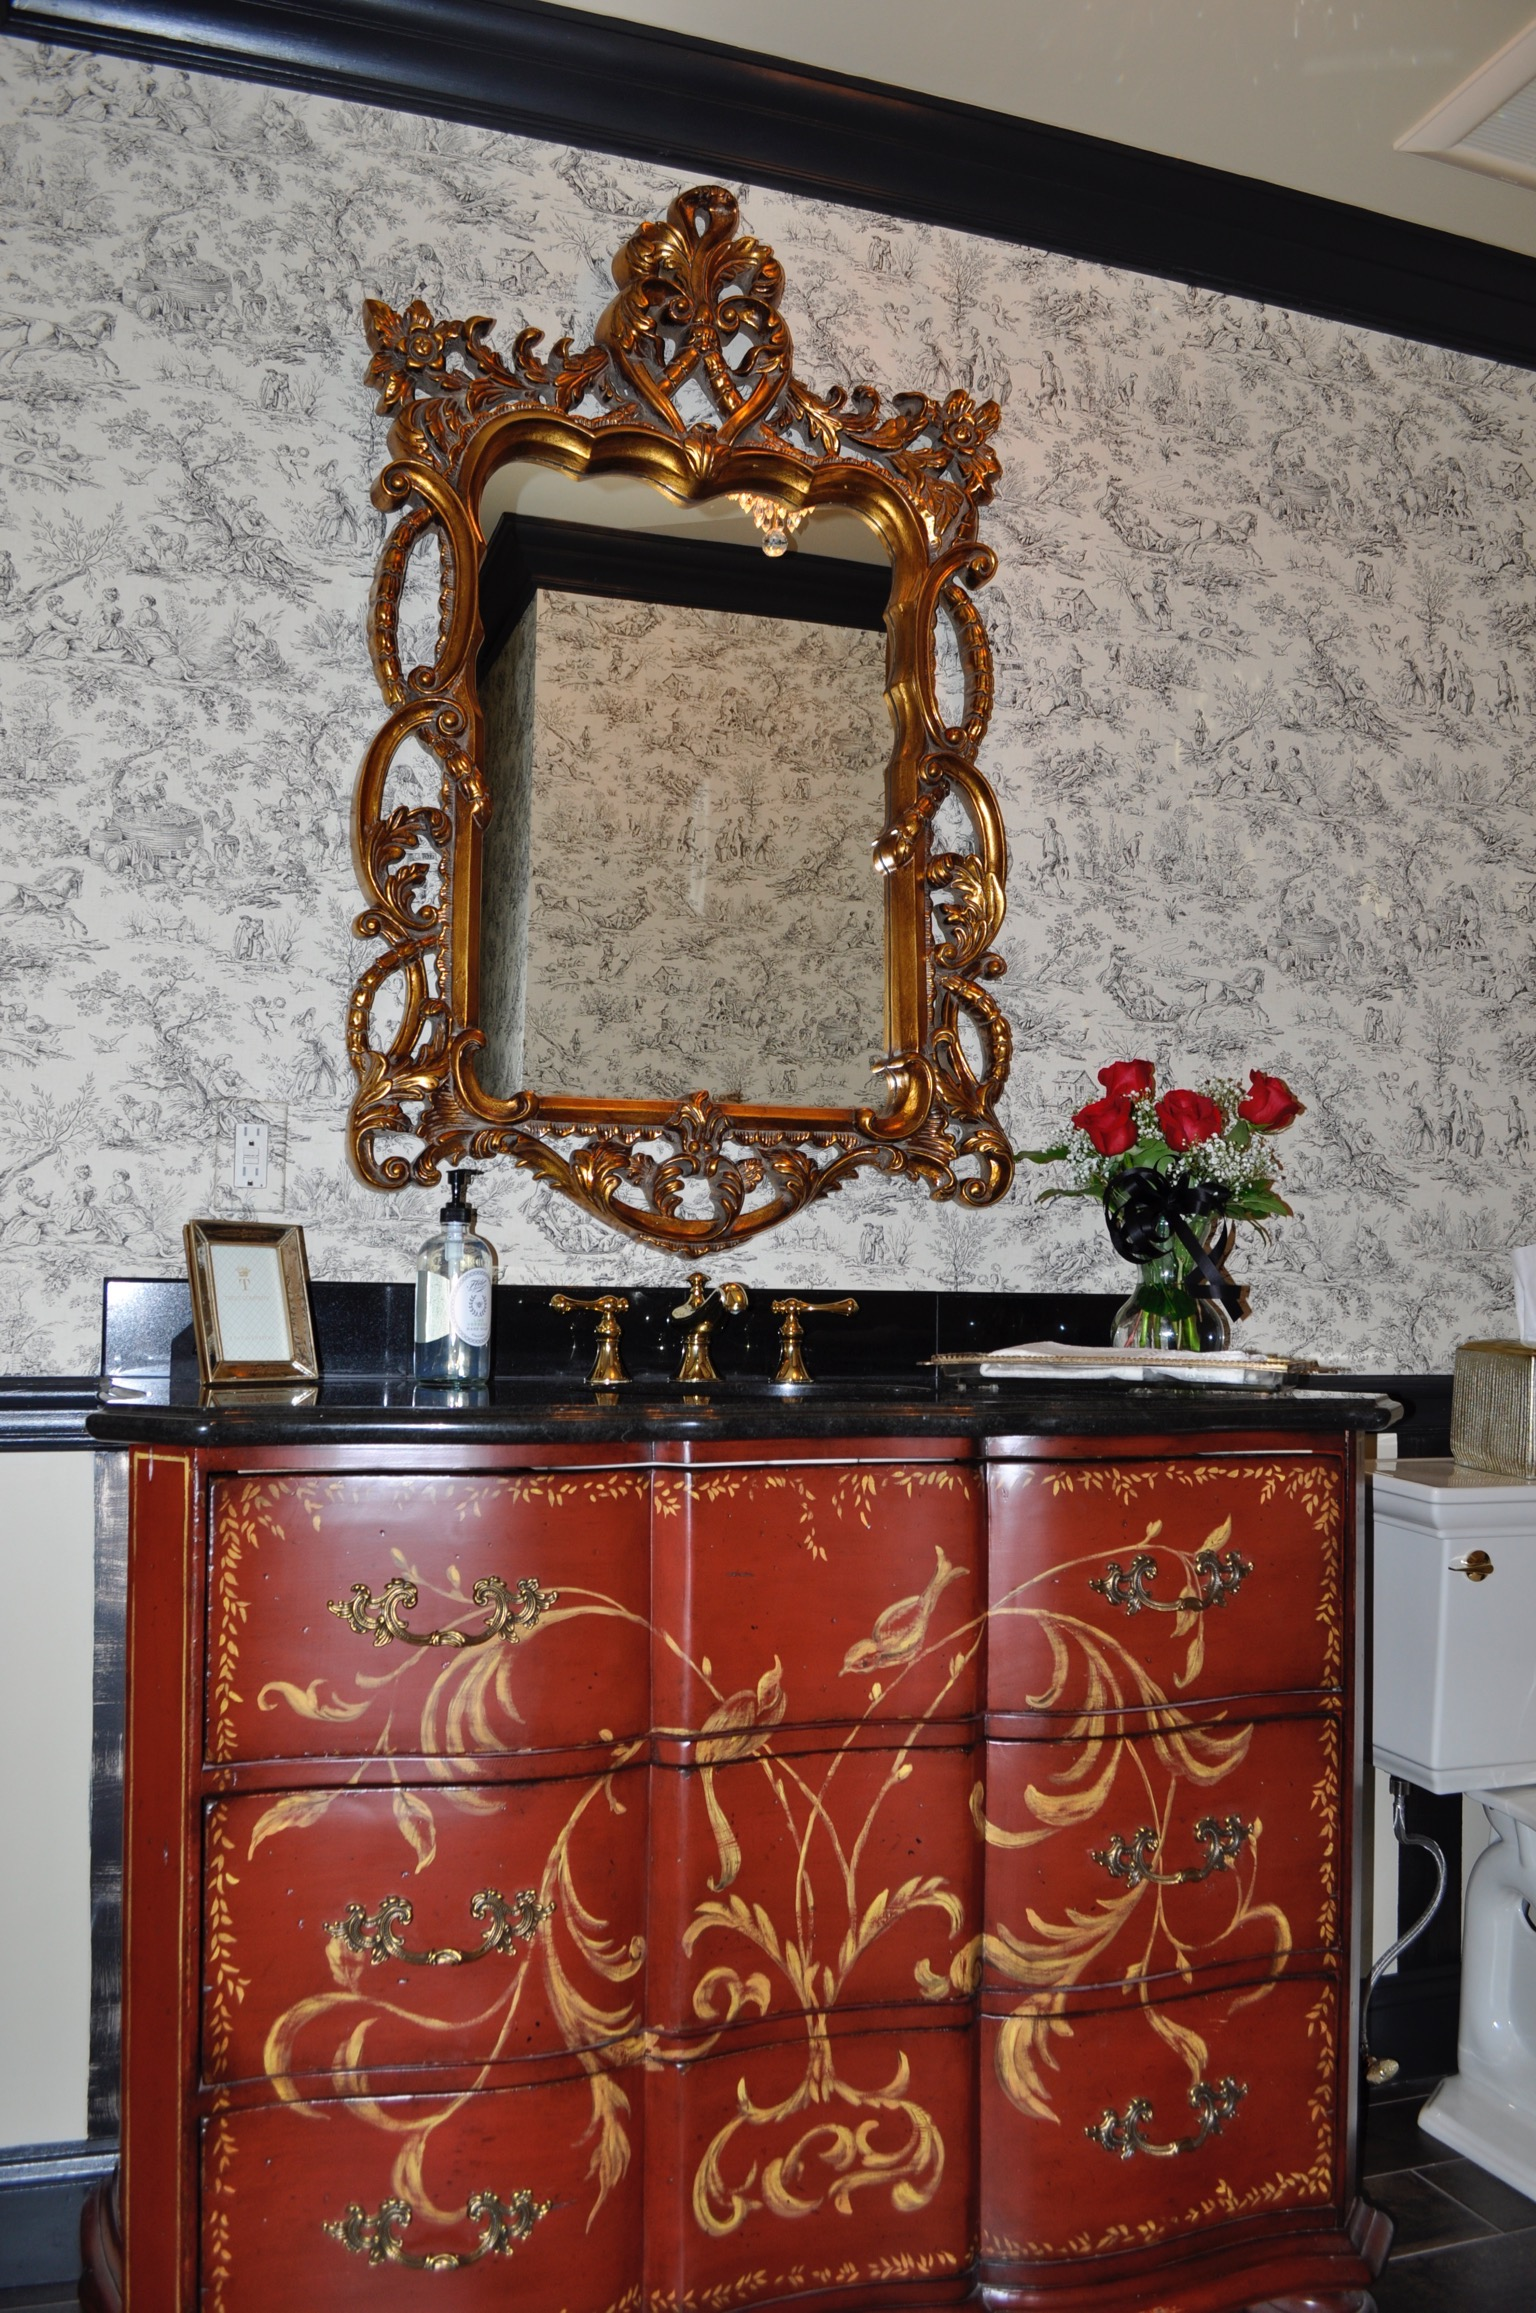 Before we purchased this red drawer chest to convert into a custom vanity for our client, we took detailed measurements and spoke with our contractor to ensure it would be possible and functional!